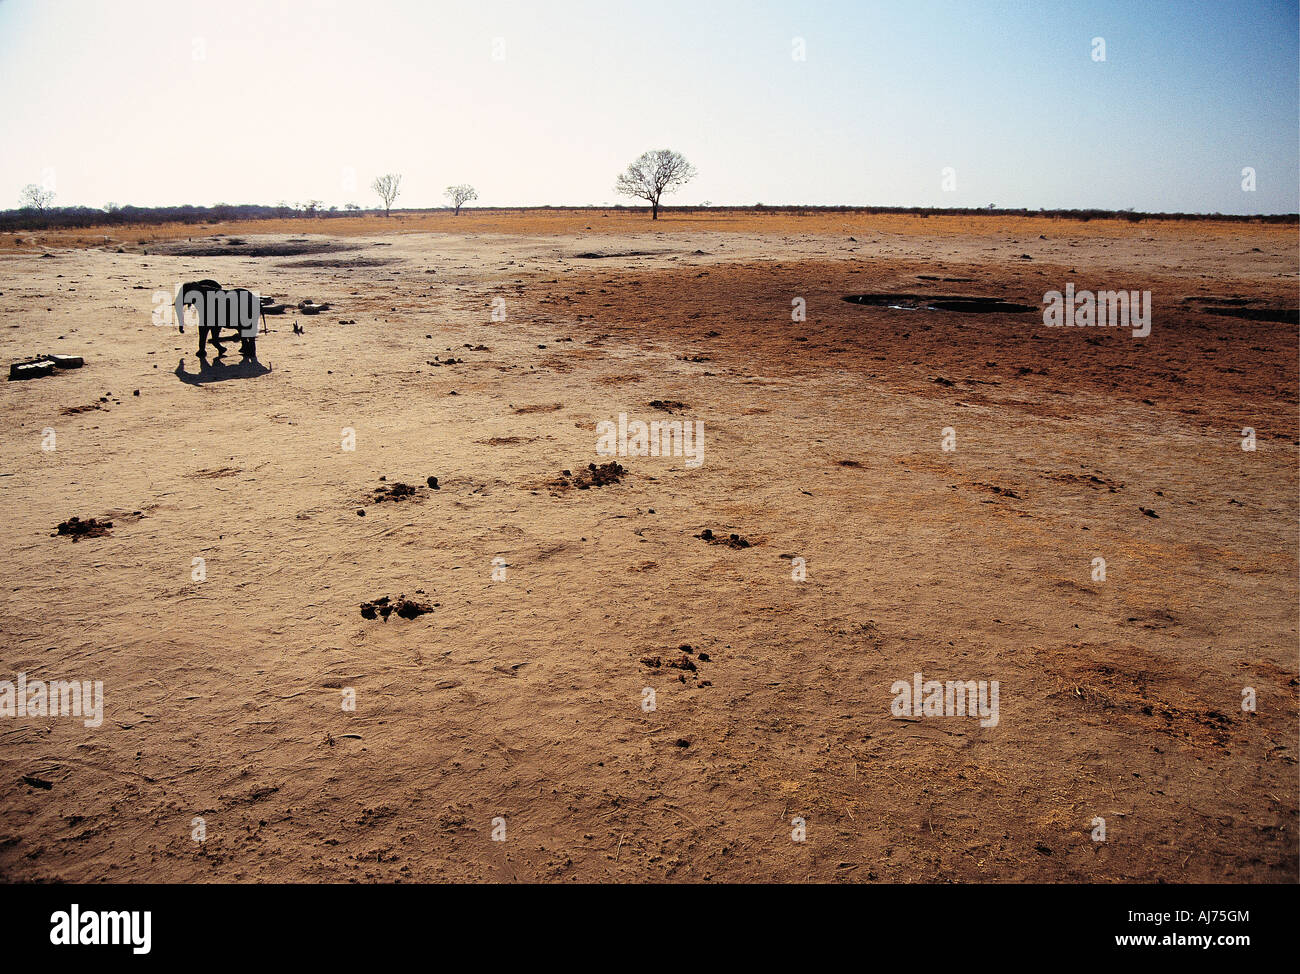 An elephant trudging across a drought stricken area close to the Botswana border in Zimbabwe - Stock Image